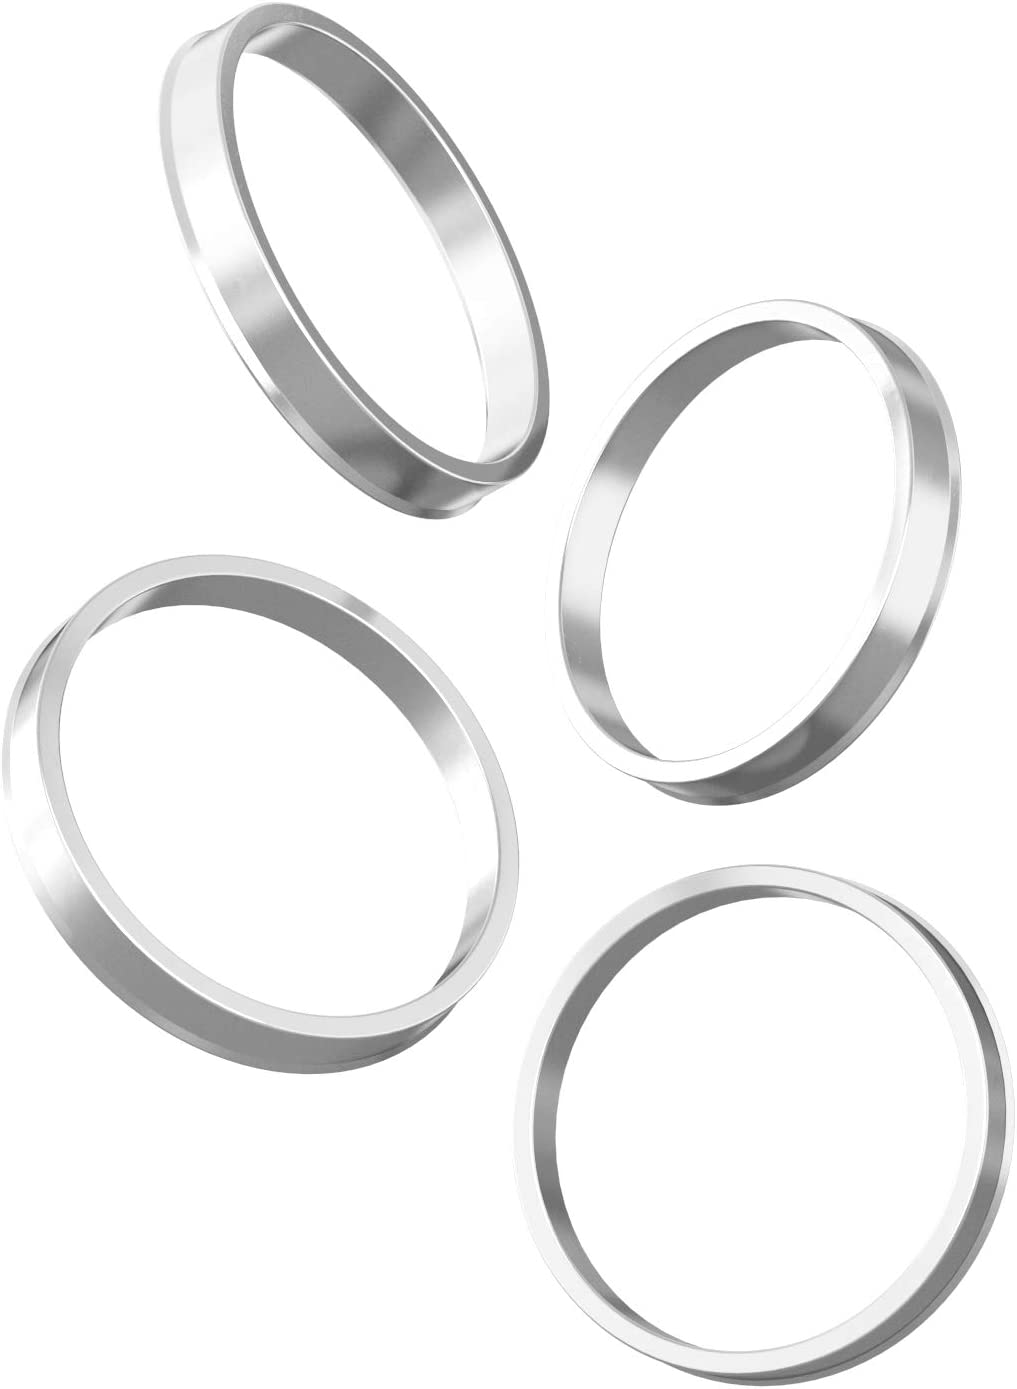 Only Fits 63.4mm Vehicle Hub and 74.1mm Wheel Centerbore Pack of 4 - 63.4mm ID to 74.1mm OD Hubcentric Rings Silver Aluminum Hubrings